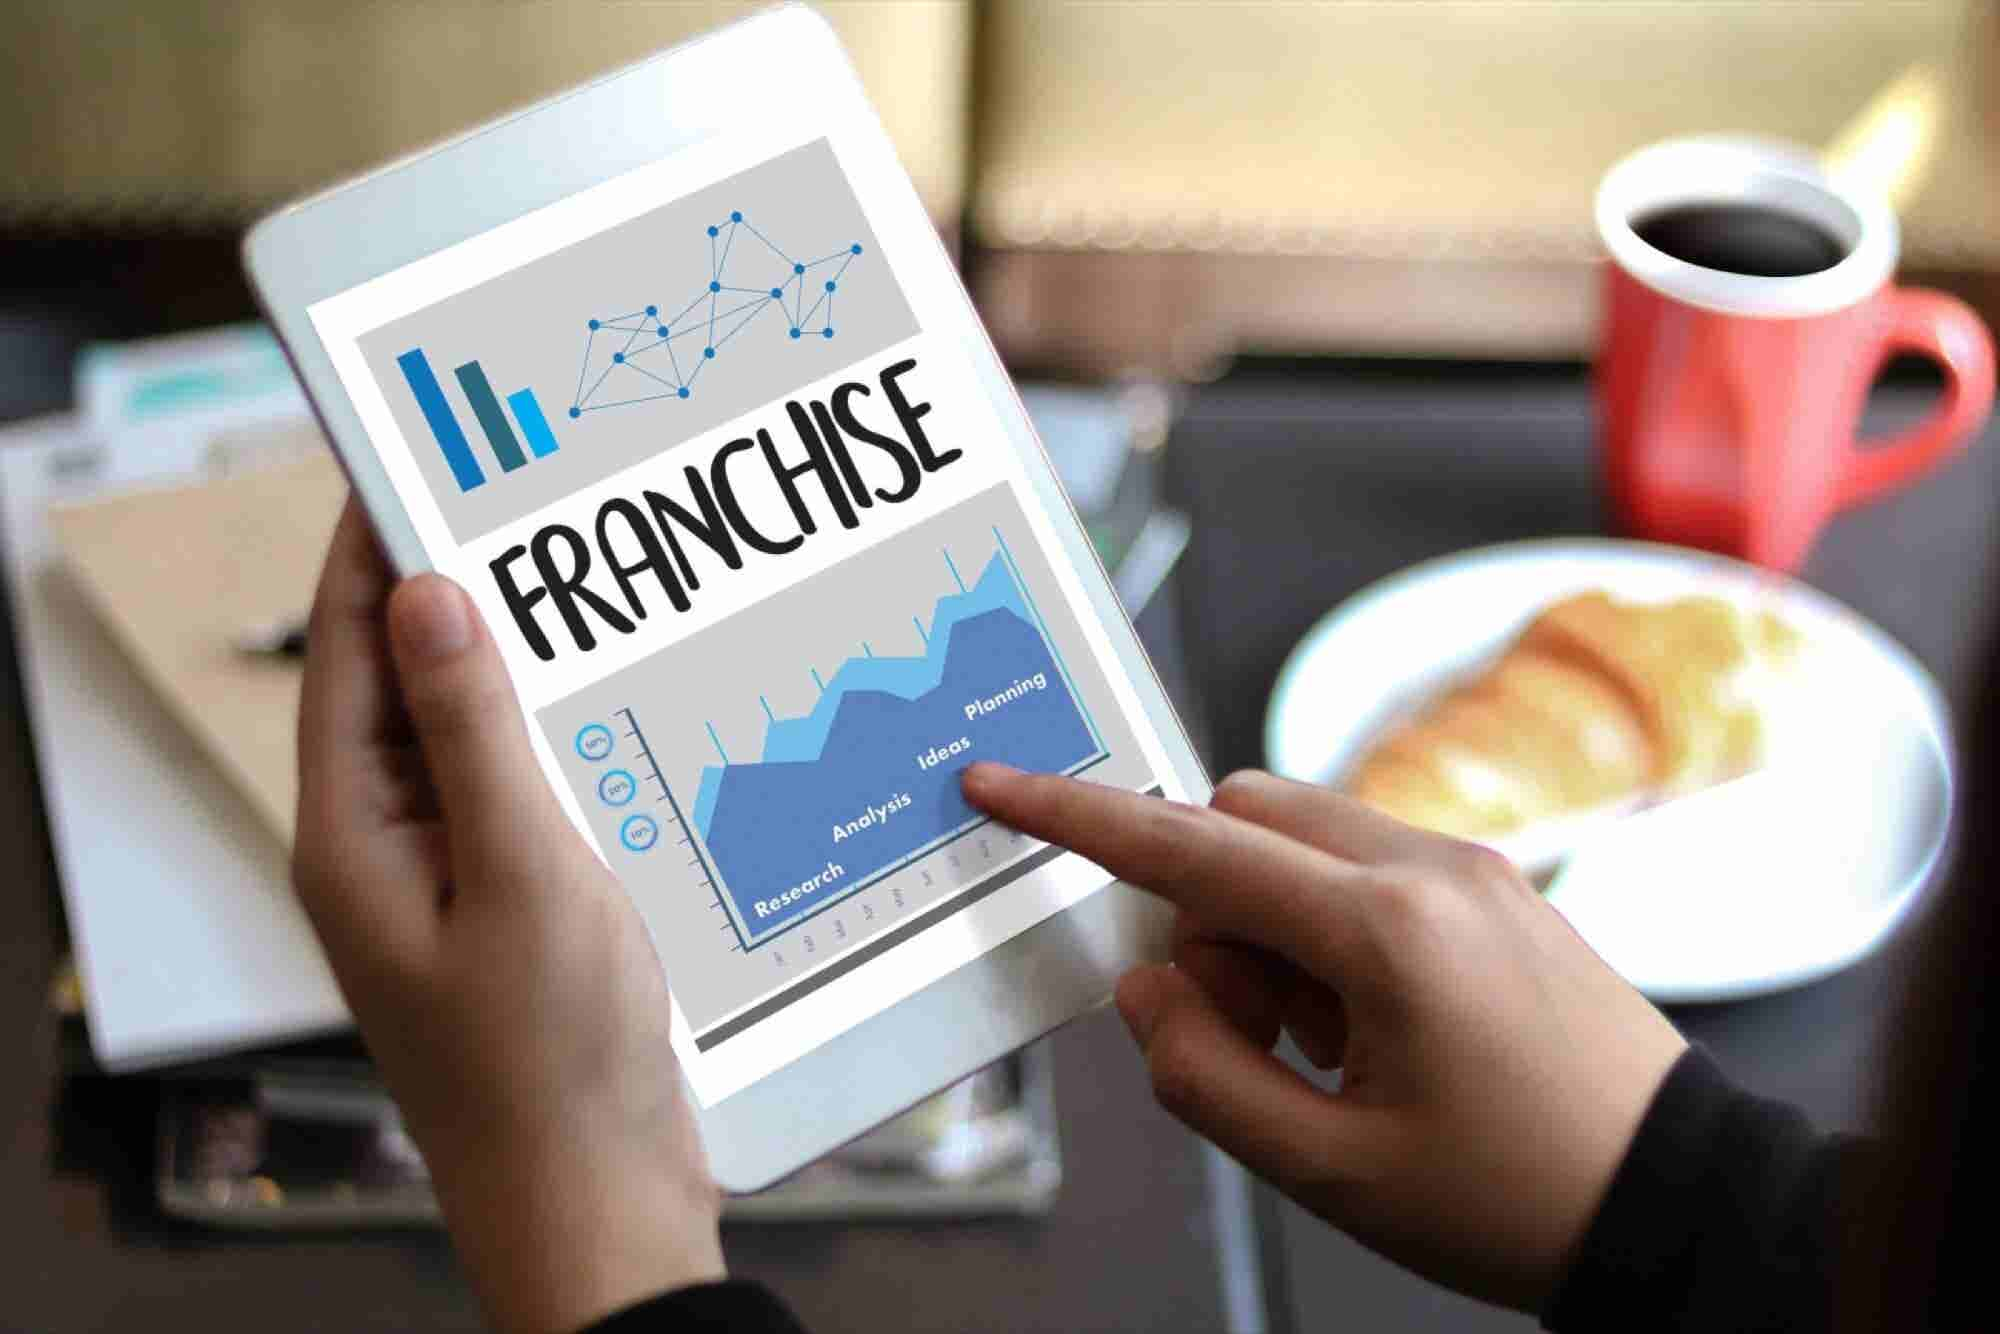 100 Franchises You Can Start For Less Than $100,000